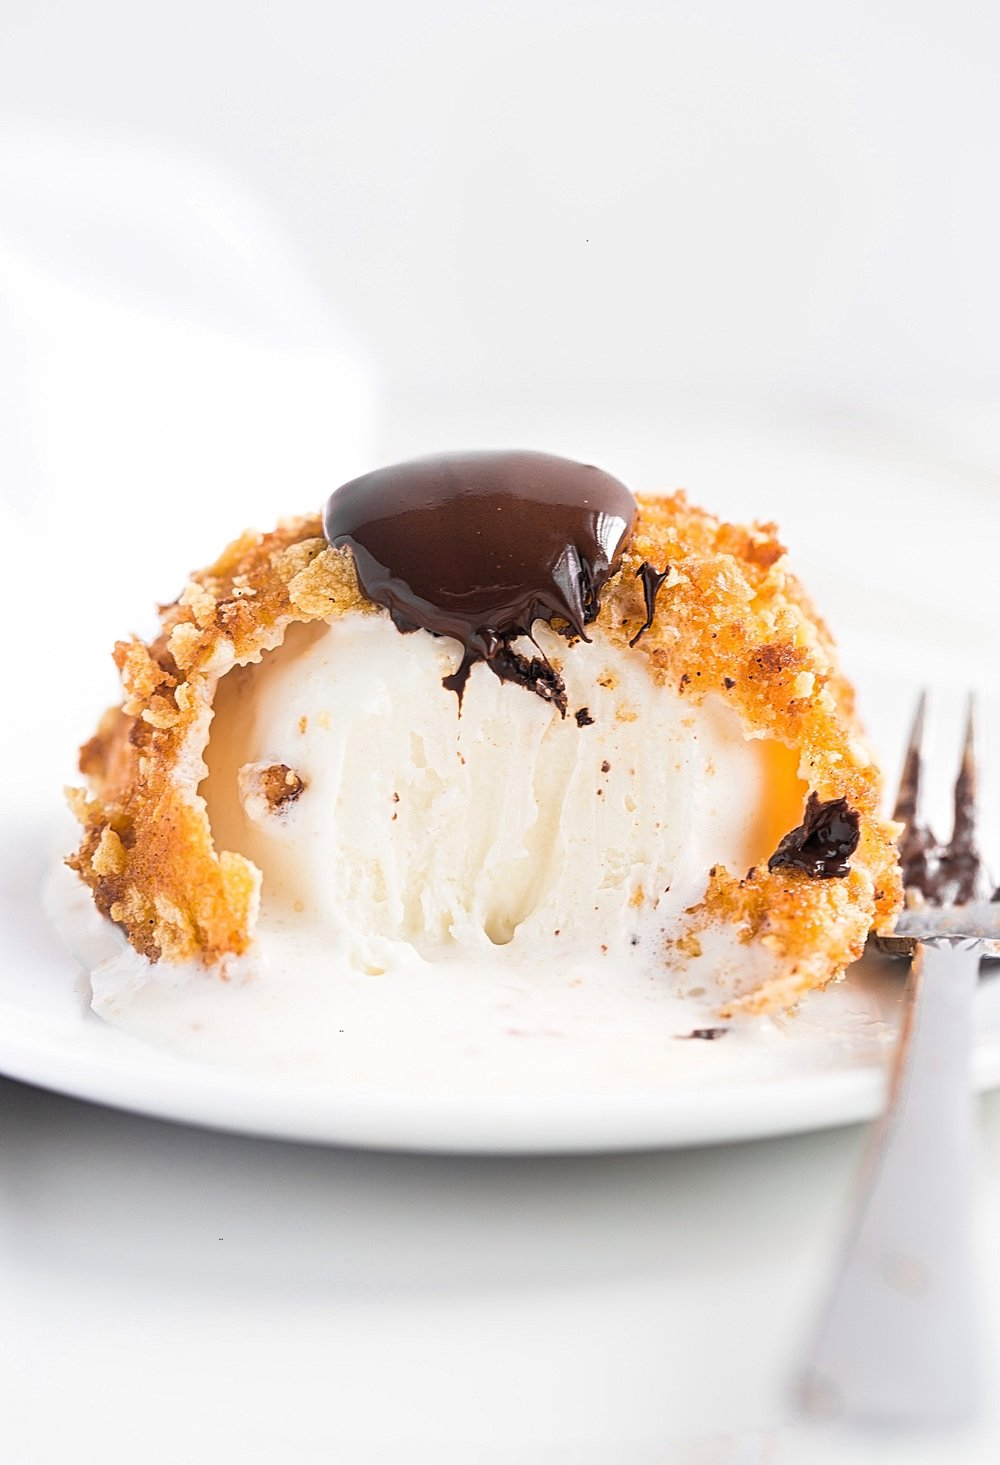 Deep Fried Ice Cream: vanilla ice cream coated in a sweet, crunchy cookie topping, deep-fried for the ultimate hot and cold dessert! | TrufflesandTrends.com